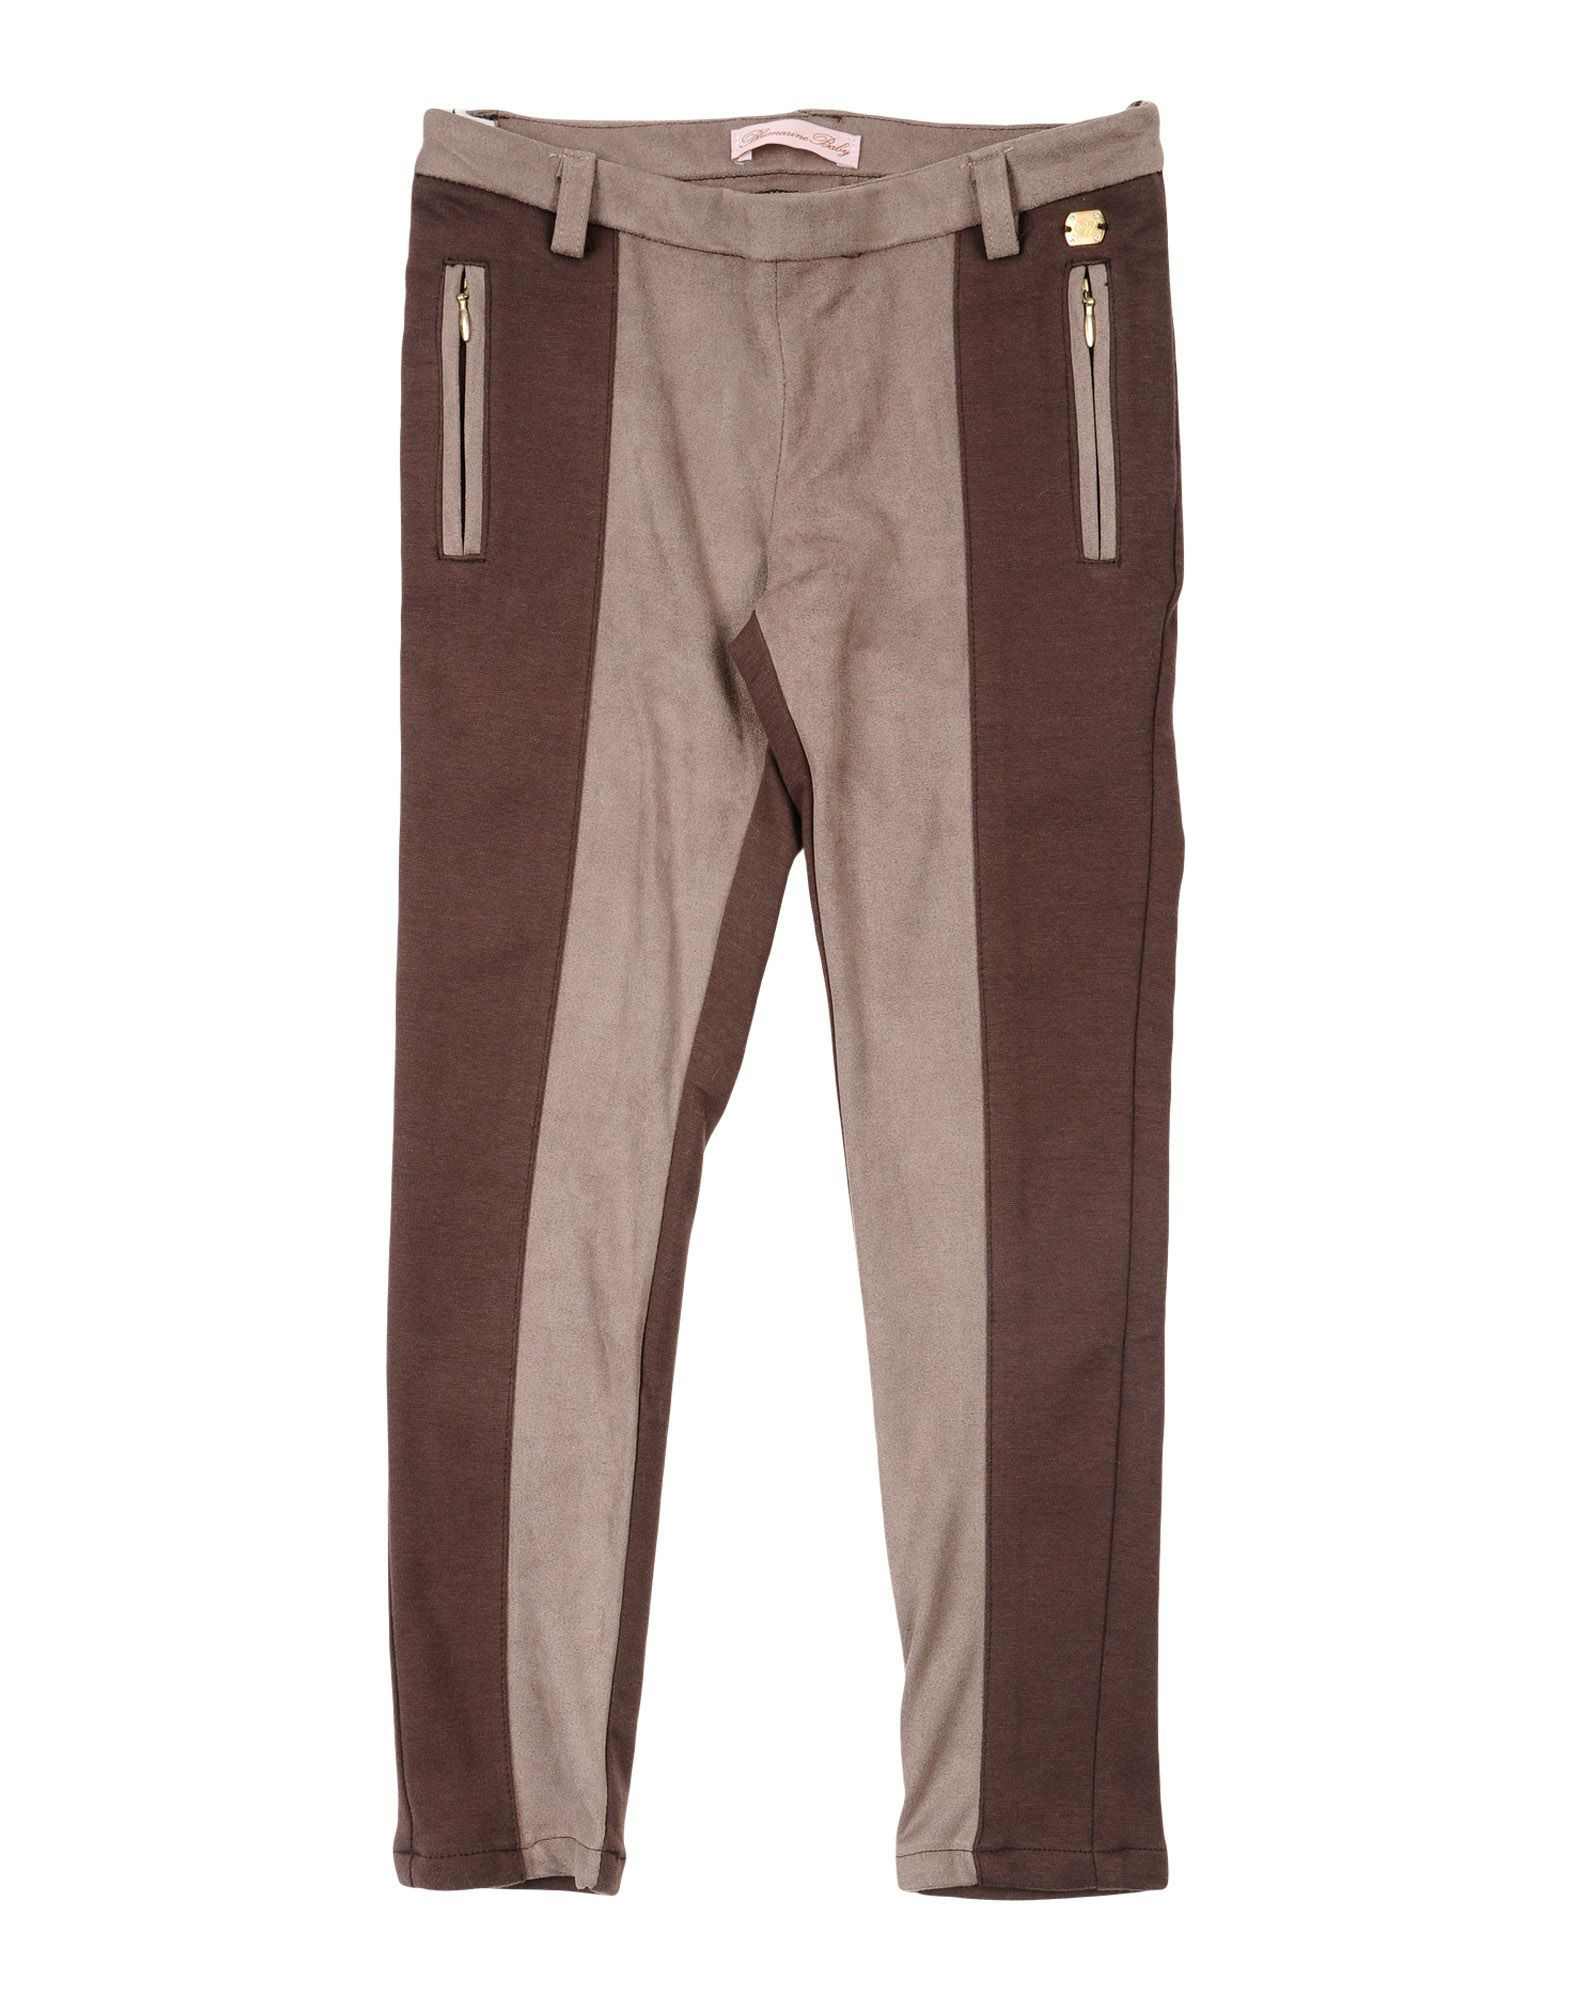 TROUSERS Miss Blumarine Khaki Girl Cotton